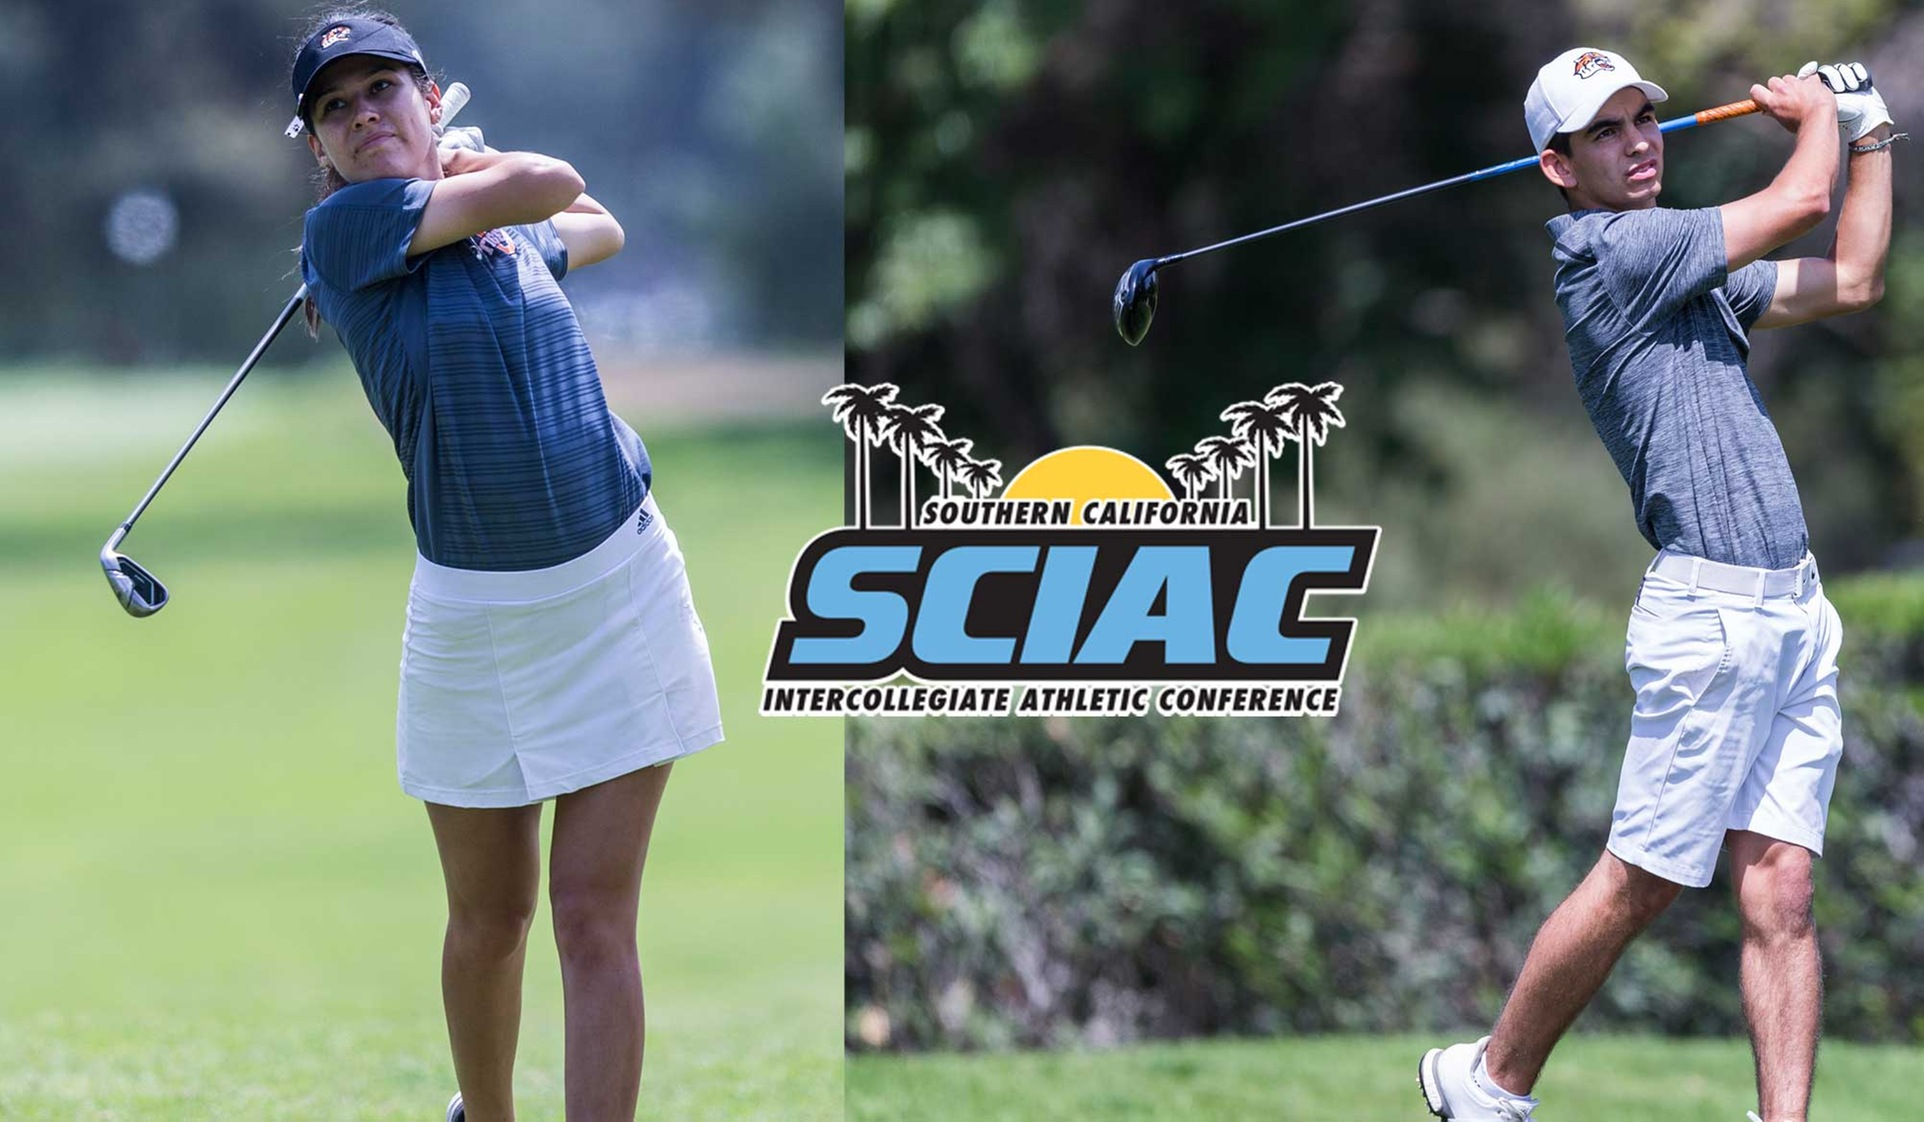 Miller, Rocha Sweep SCIAC Weekly Golf Awards